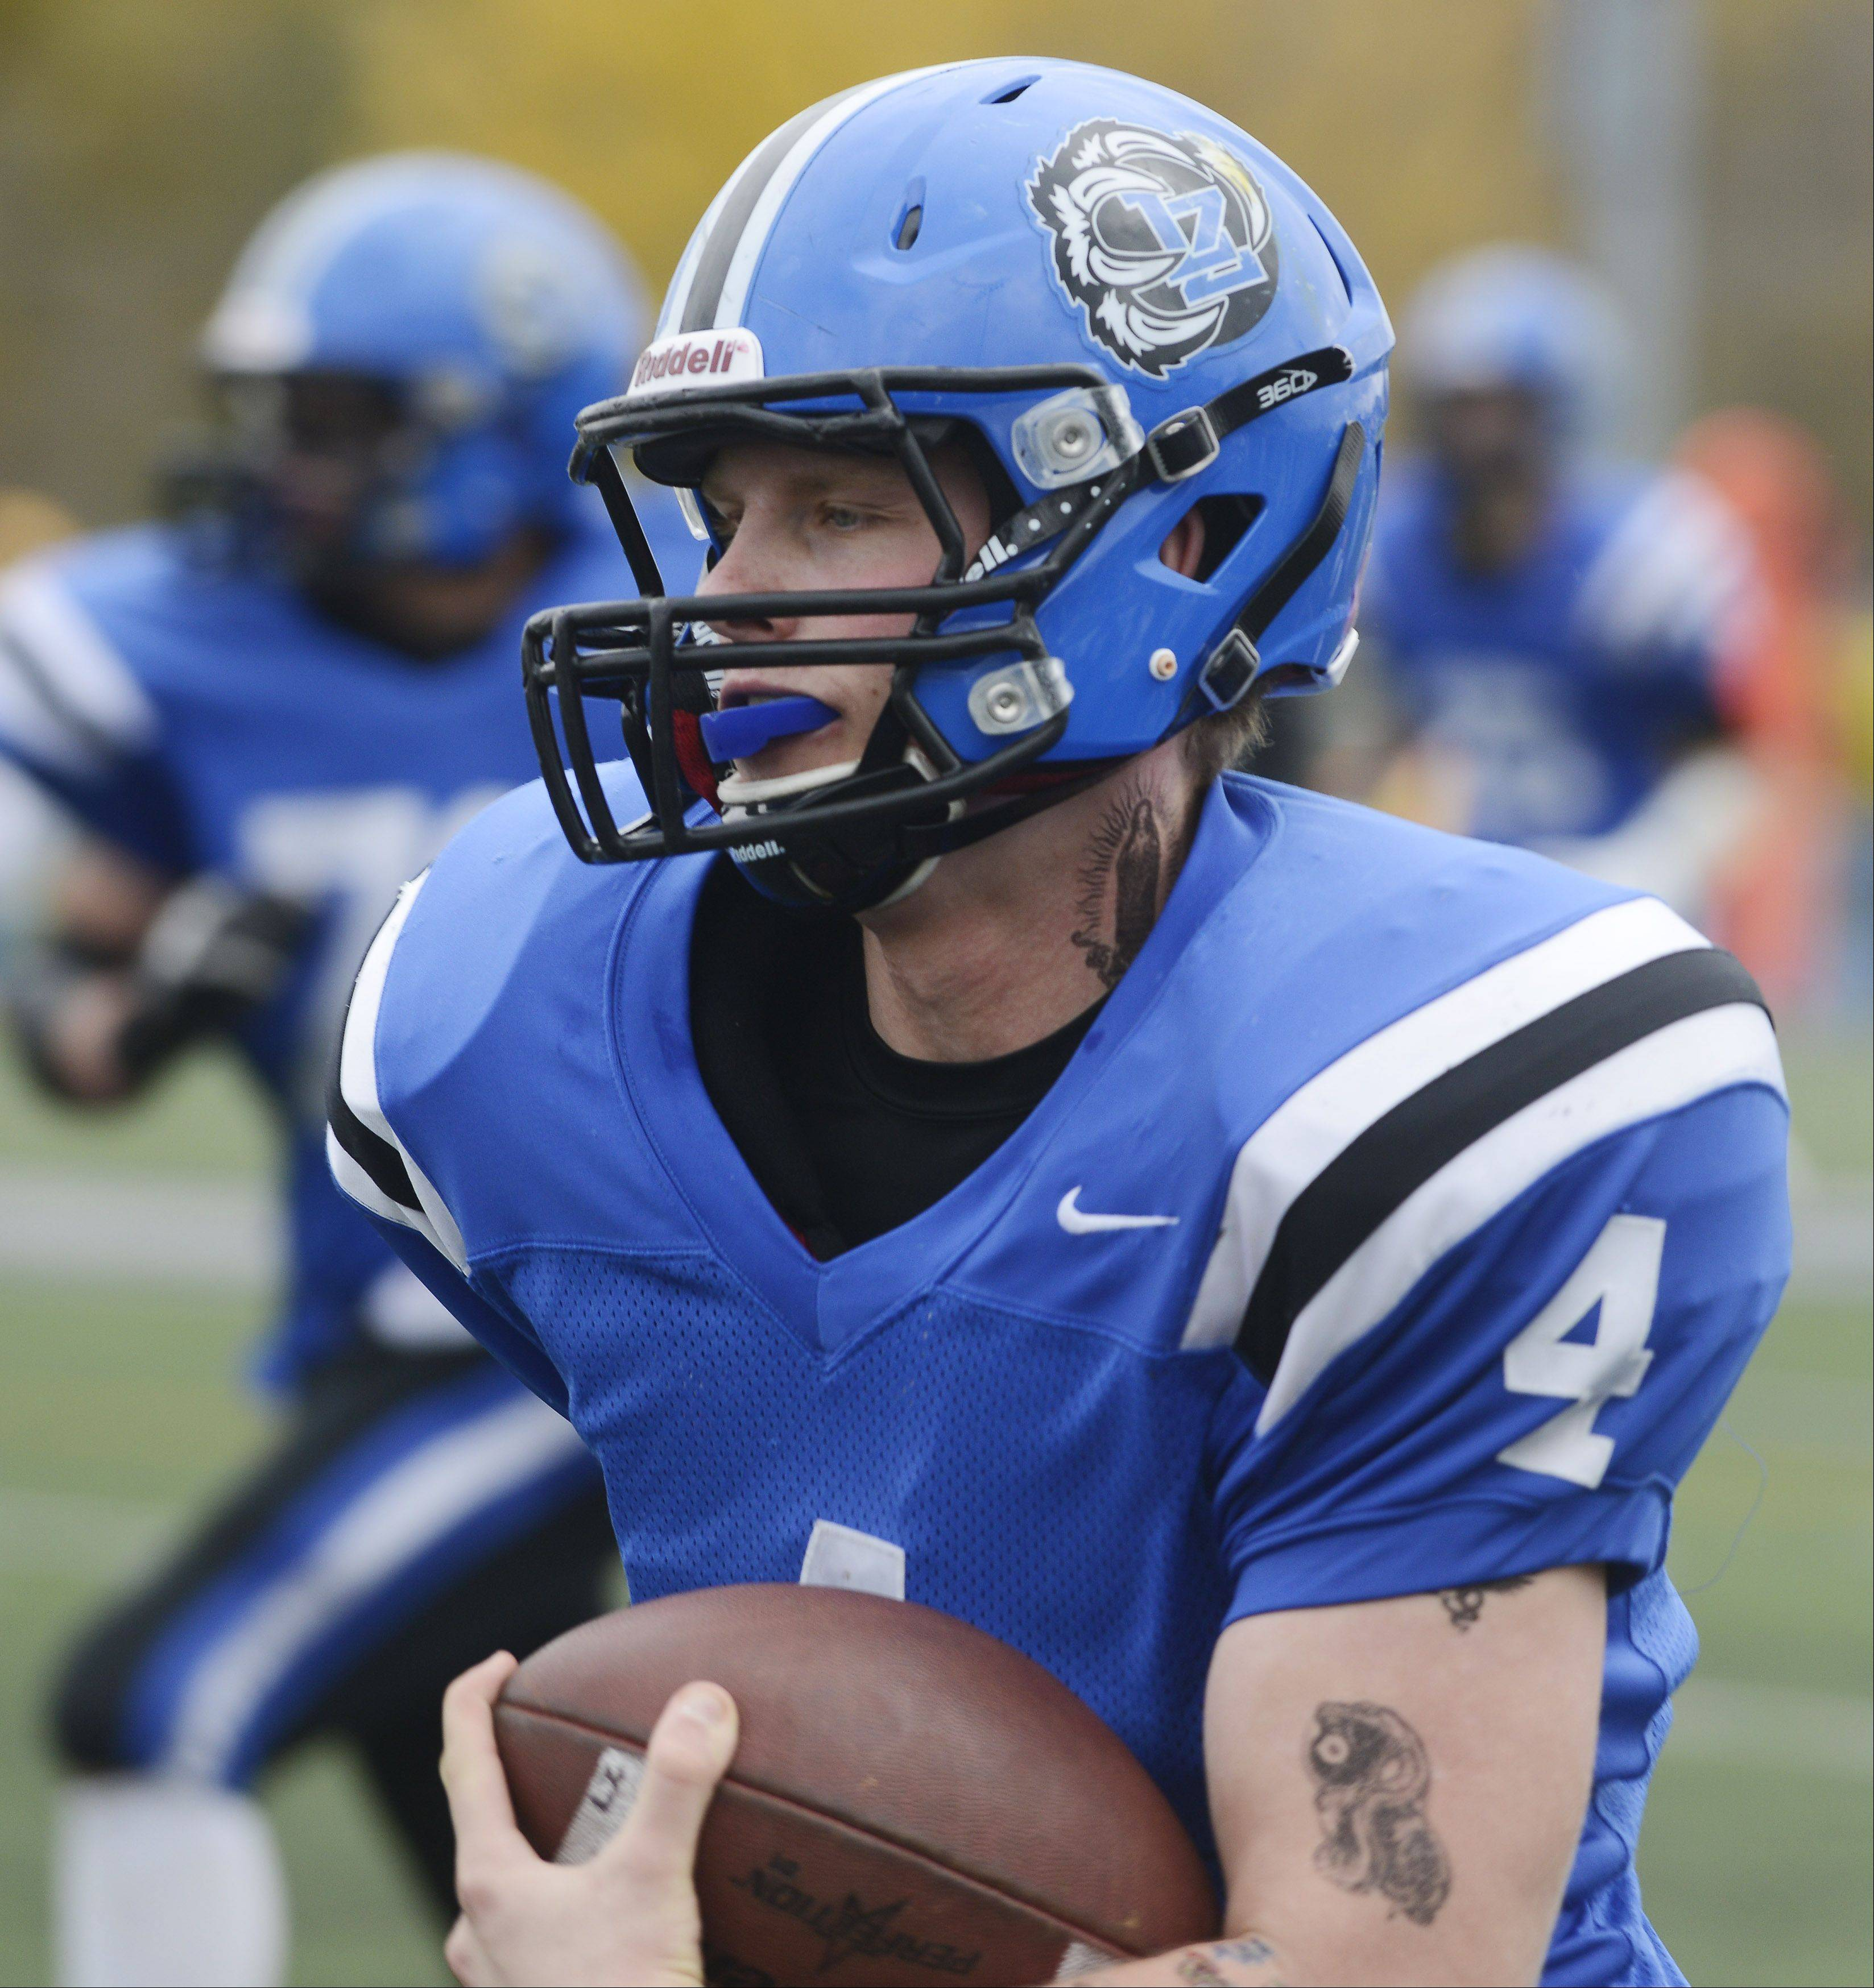 Lake Zurich's Noah Allgood carries the ball for a touchdown against Elk Grove during Saturday's Class 7A playoff game.